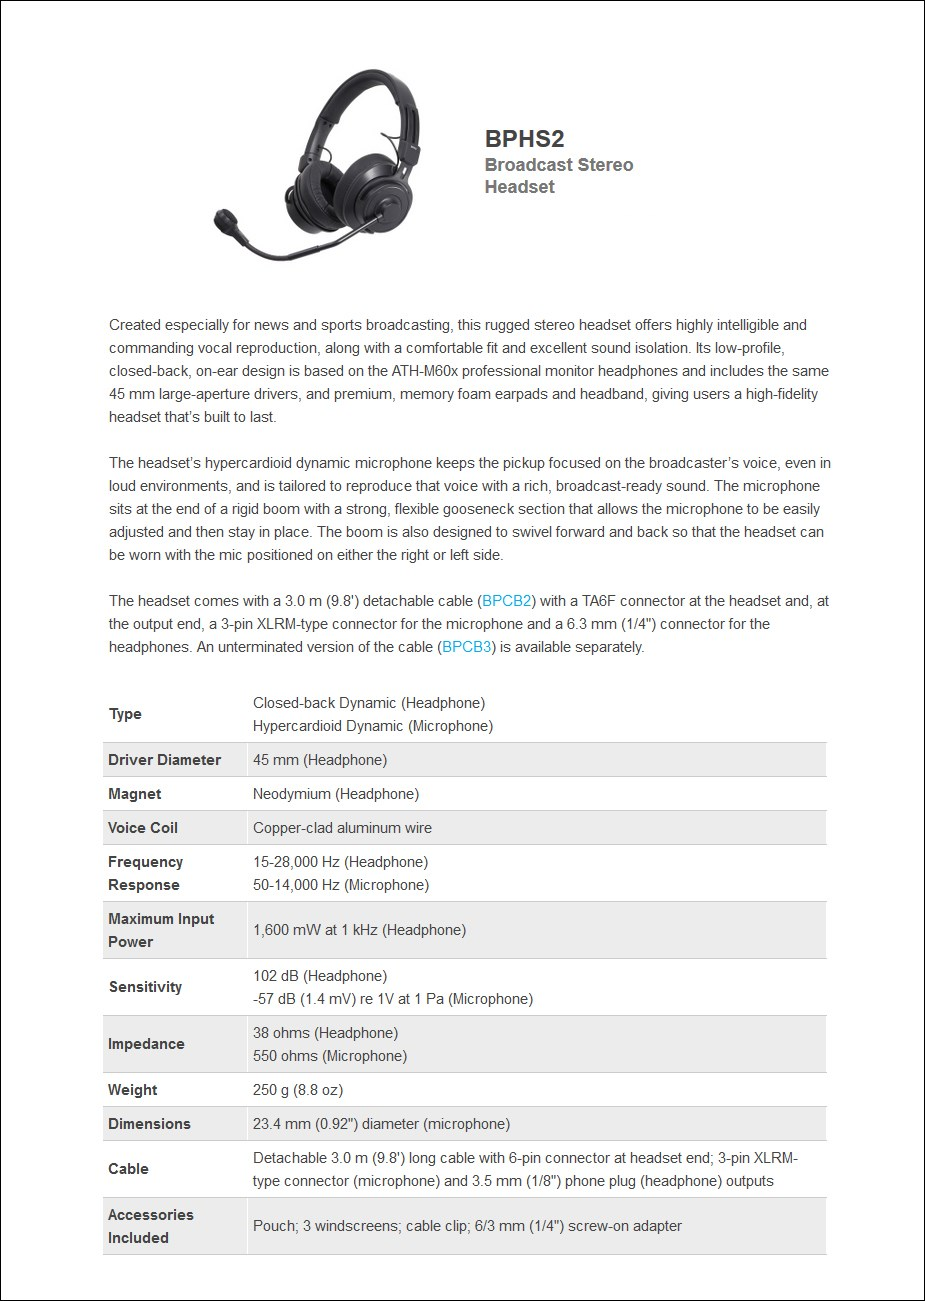 Audio-Technica BPHS2 Broadcast Stereo Headset - Desktop Overview 1